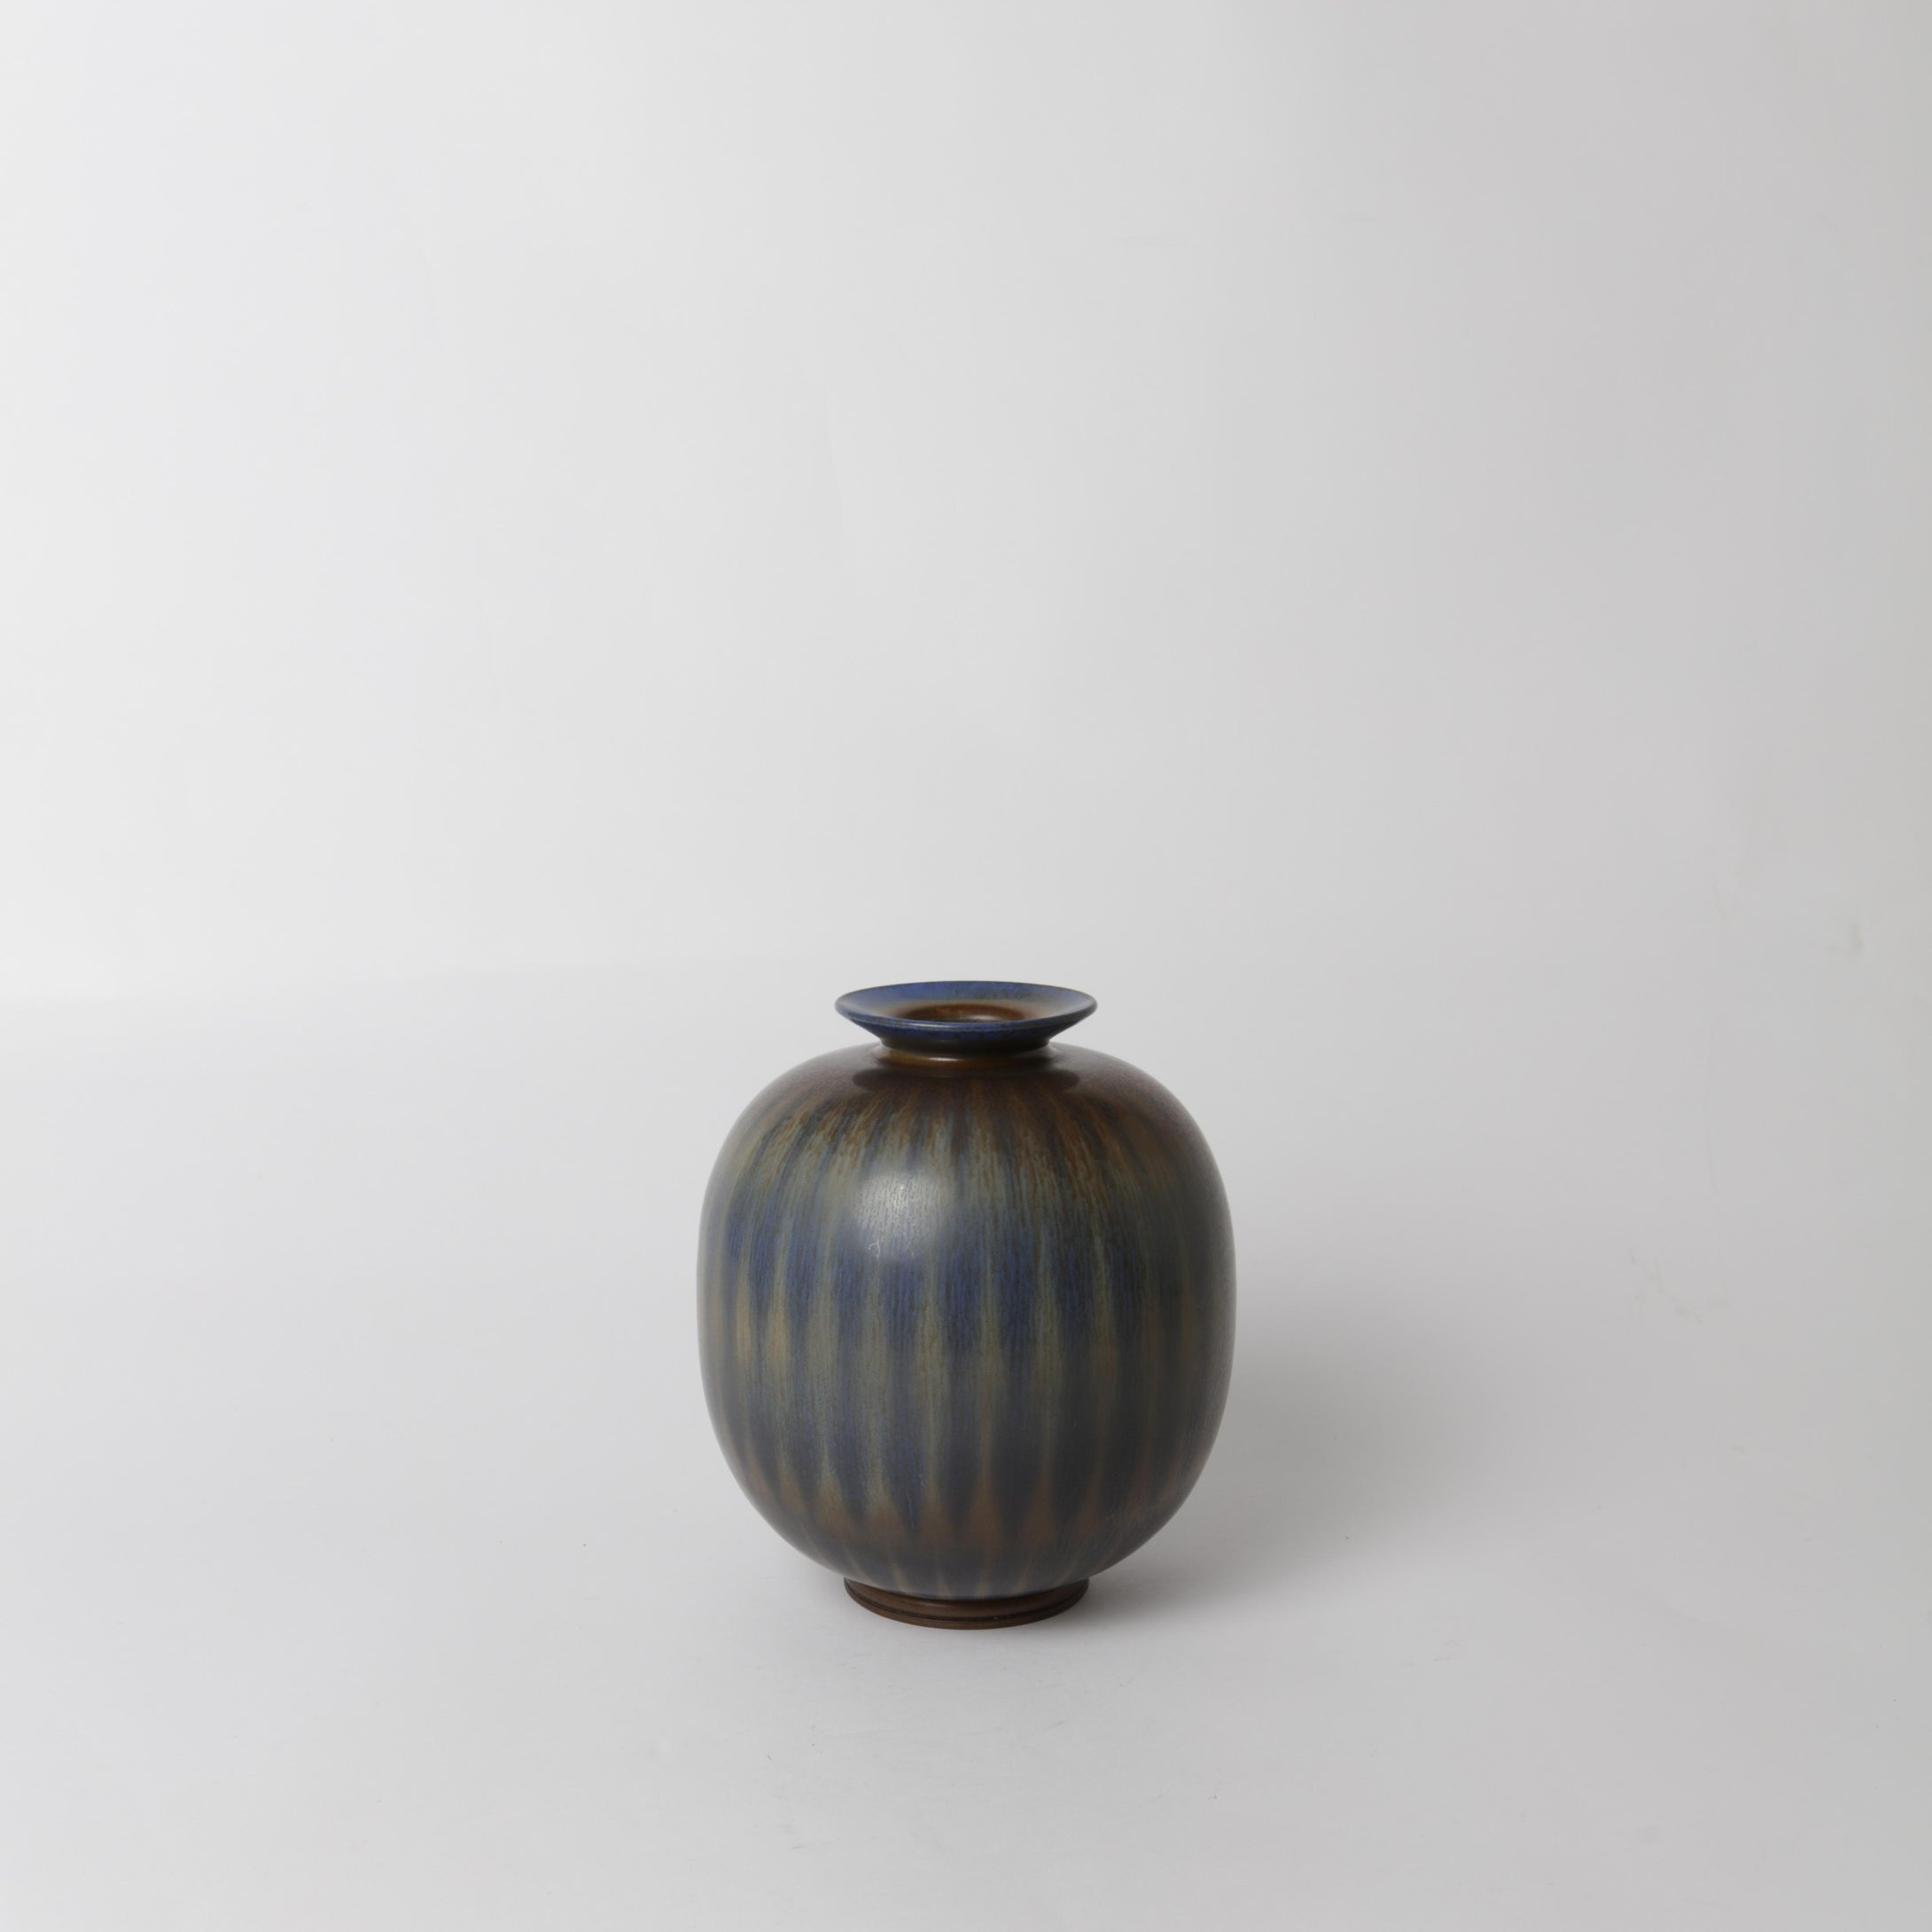 Stengodsvas av Berndt Friberg år 1960 för Gustavsberg med harpälsglasyr. 17,5cm hög. Signerad Friberg b samt Studiohanden. Stoneware vase by Berndt Friberg 1960 for Gustavsberg. Harefur glaze. H: 17,5cm/6,9″. Signed Friberg b and the